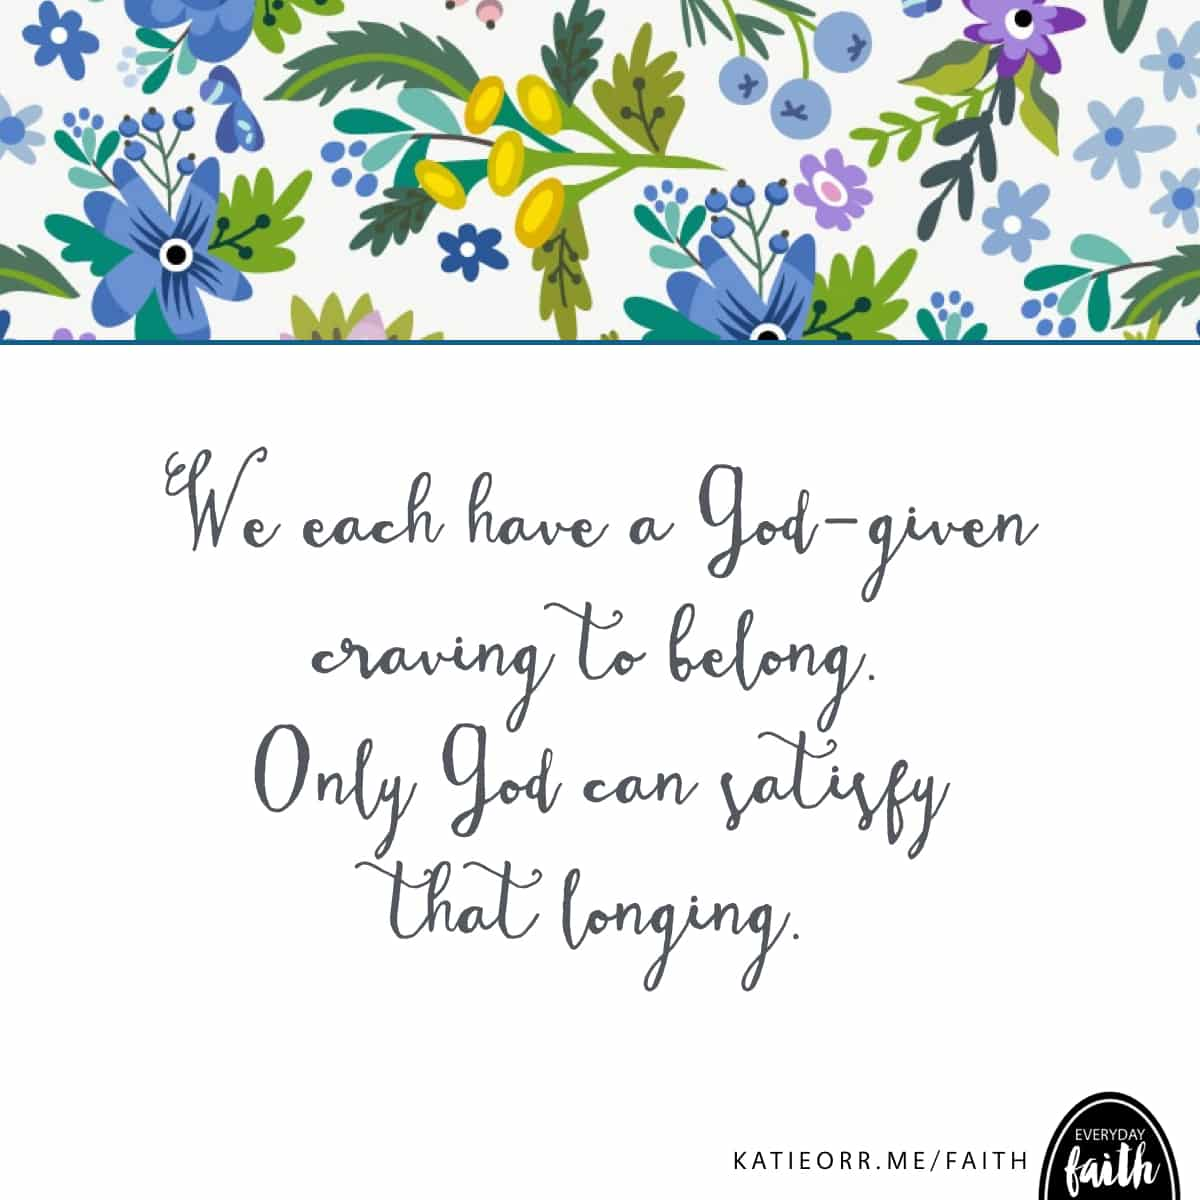 only God can satisty my longings